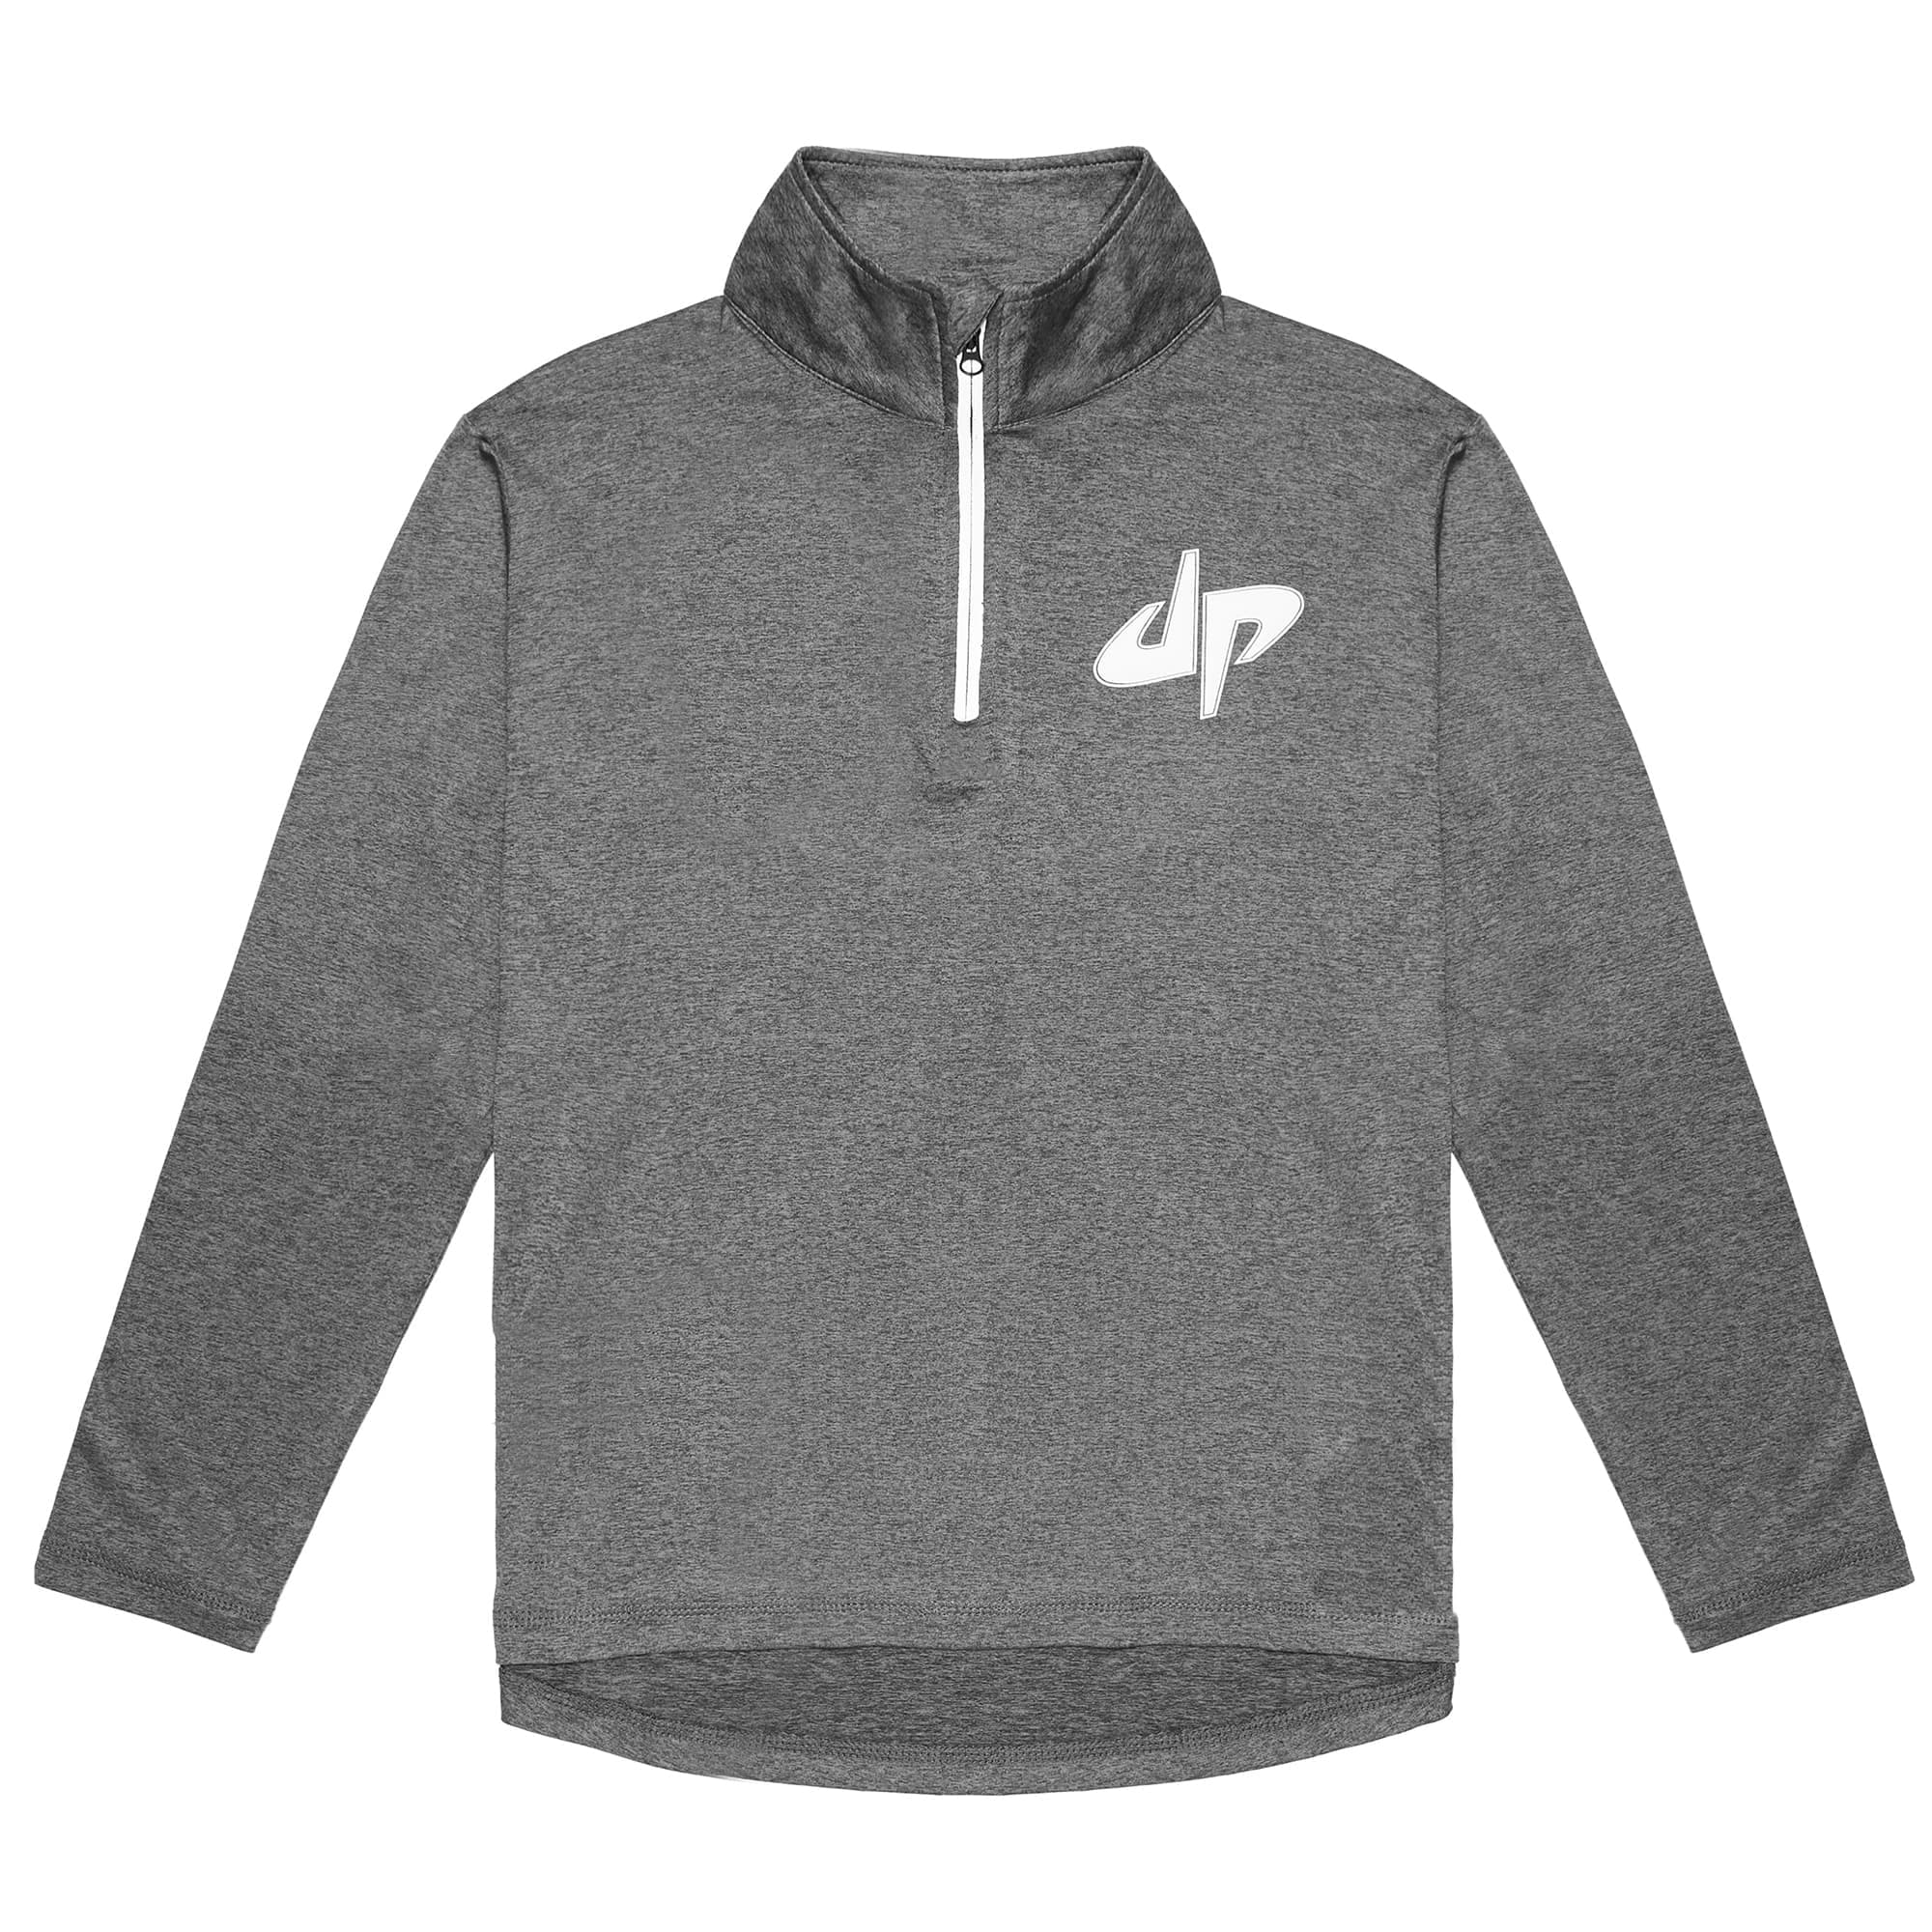 Reflective Half Zip Performance Top